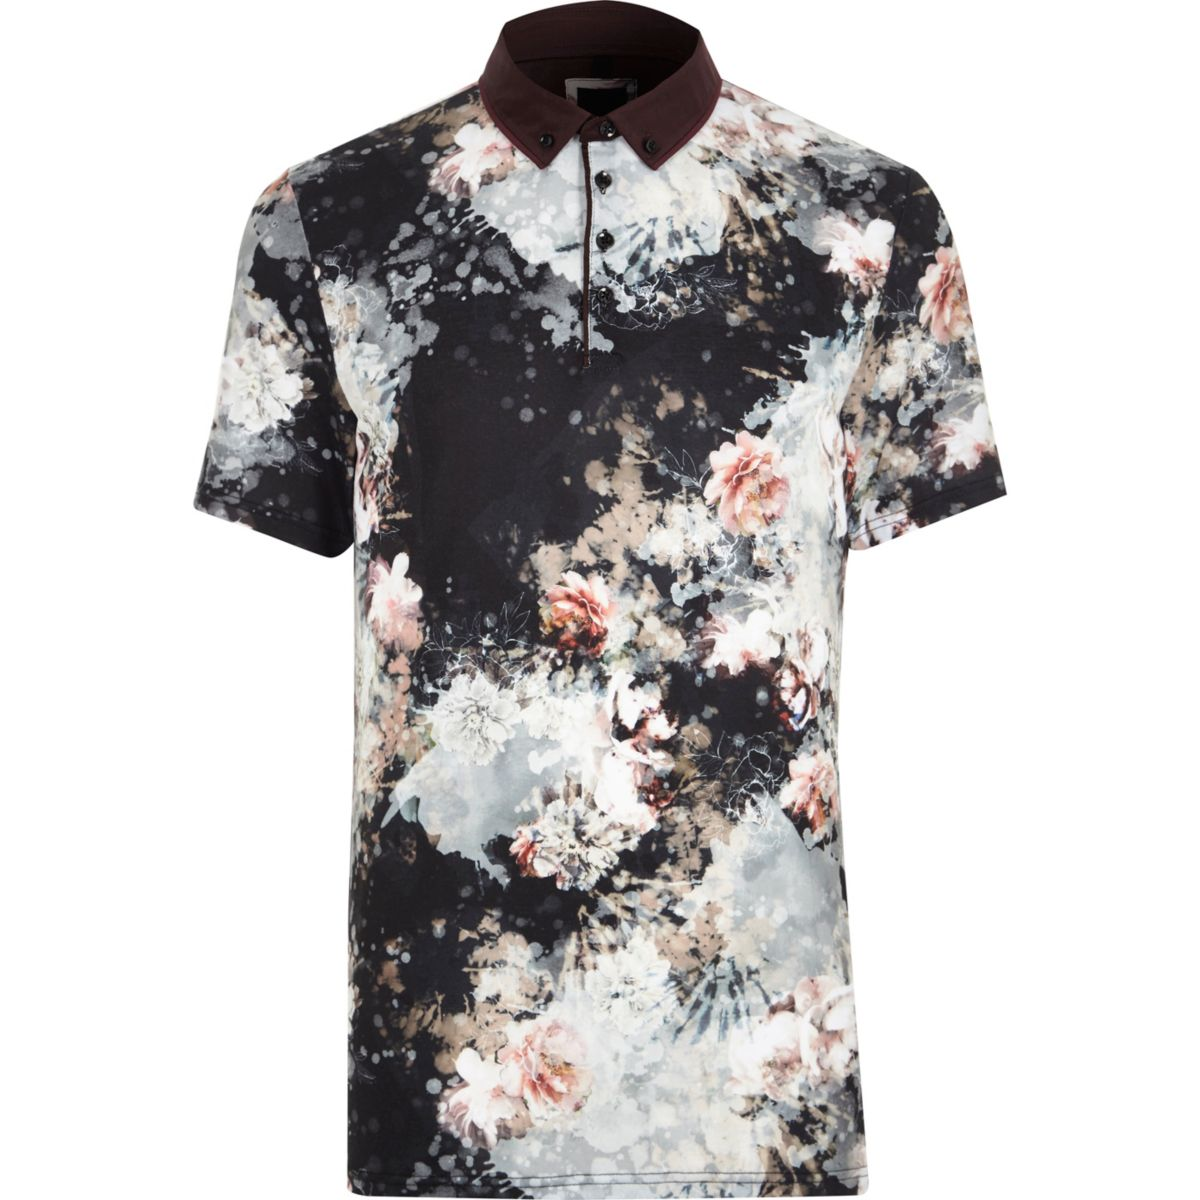 Black floral print slim fit smart polo shirt seasonal for Black floral print shirt